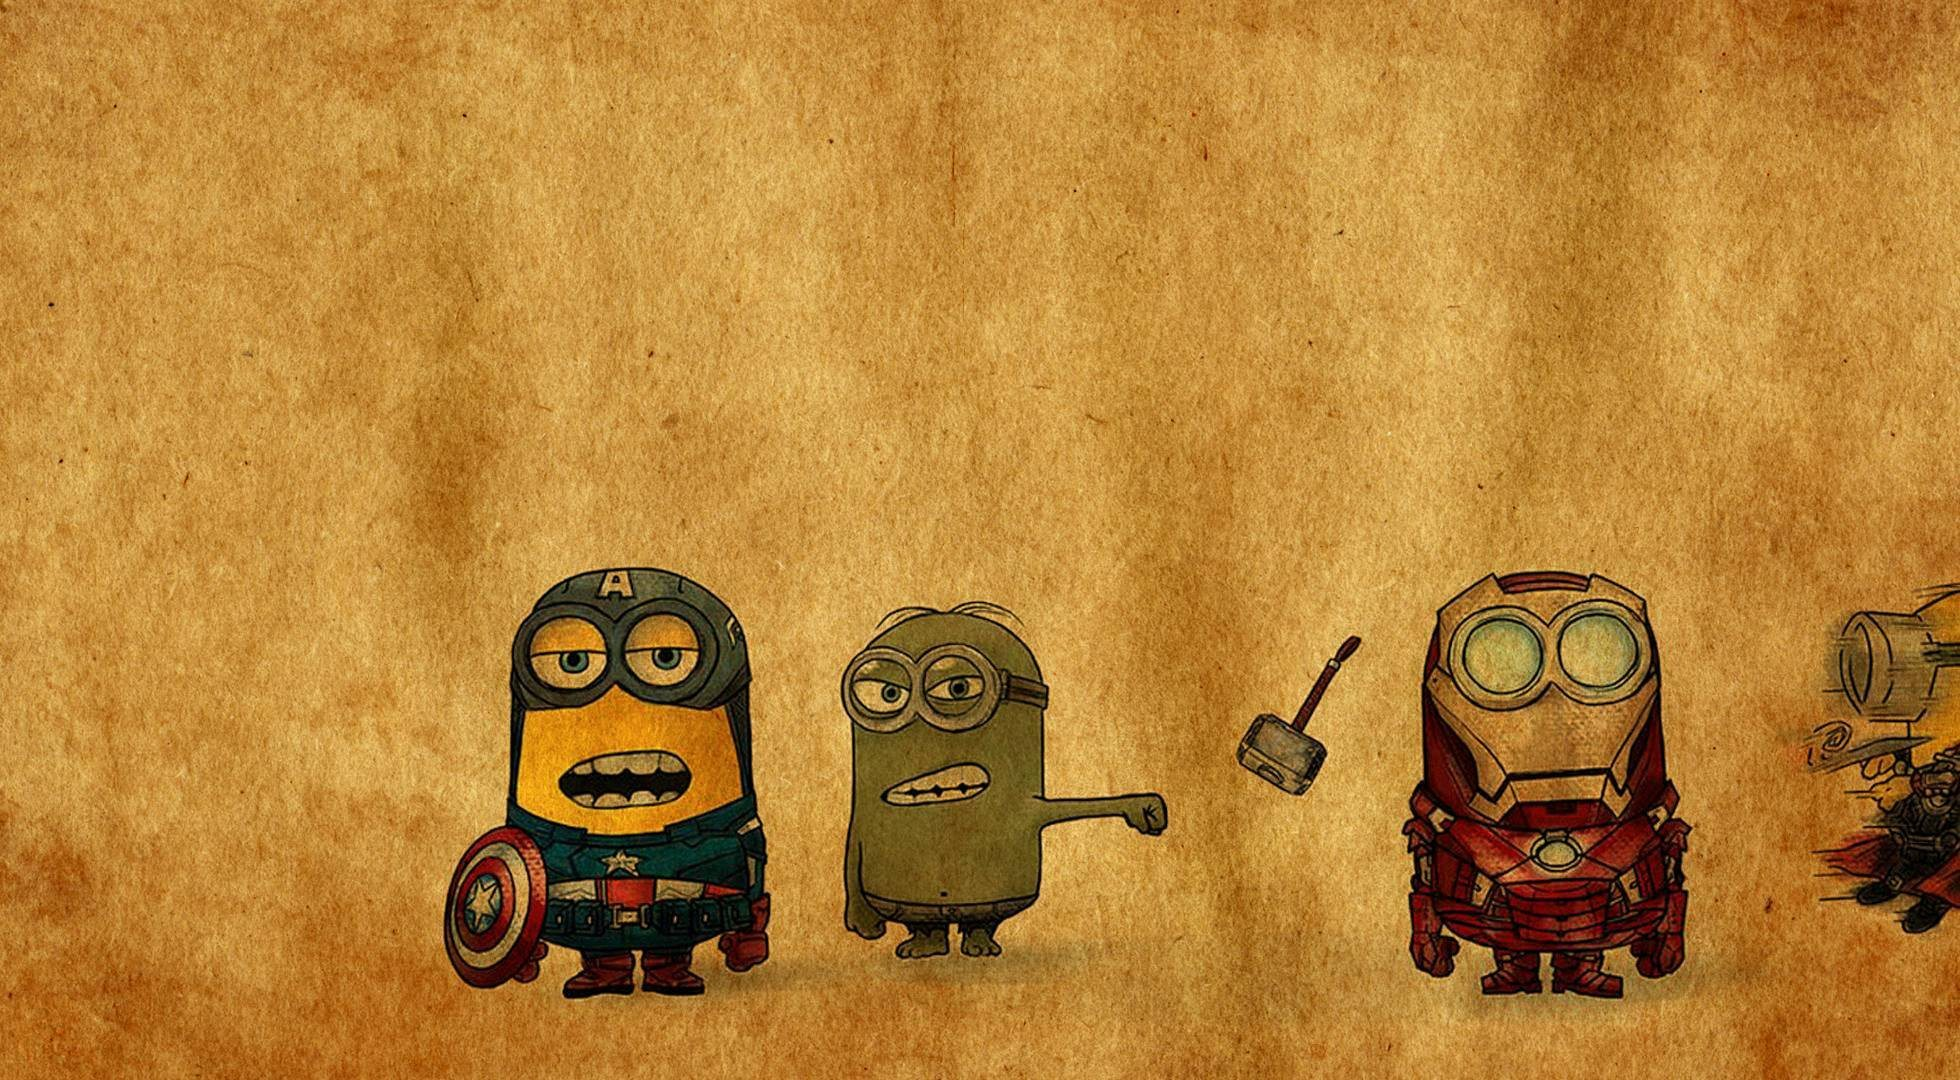 minions superheroes hd wallpapers wallpapers55com   Best Wallpapers 1960x1080